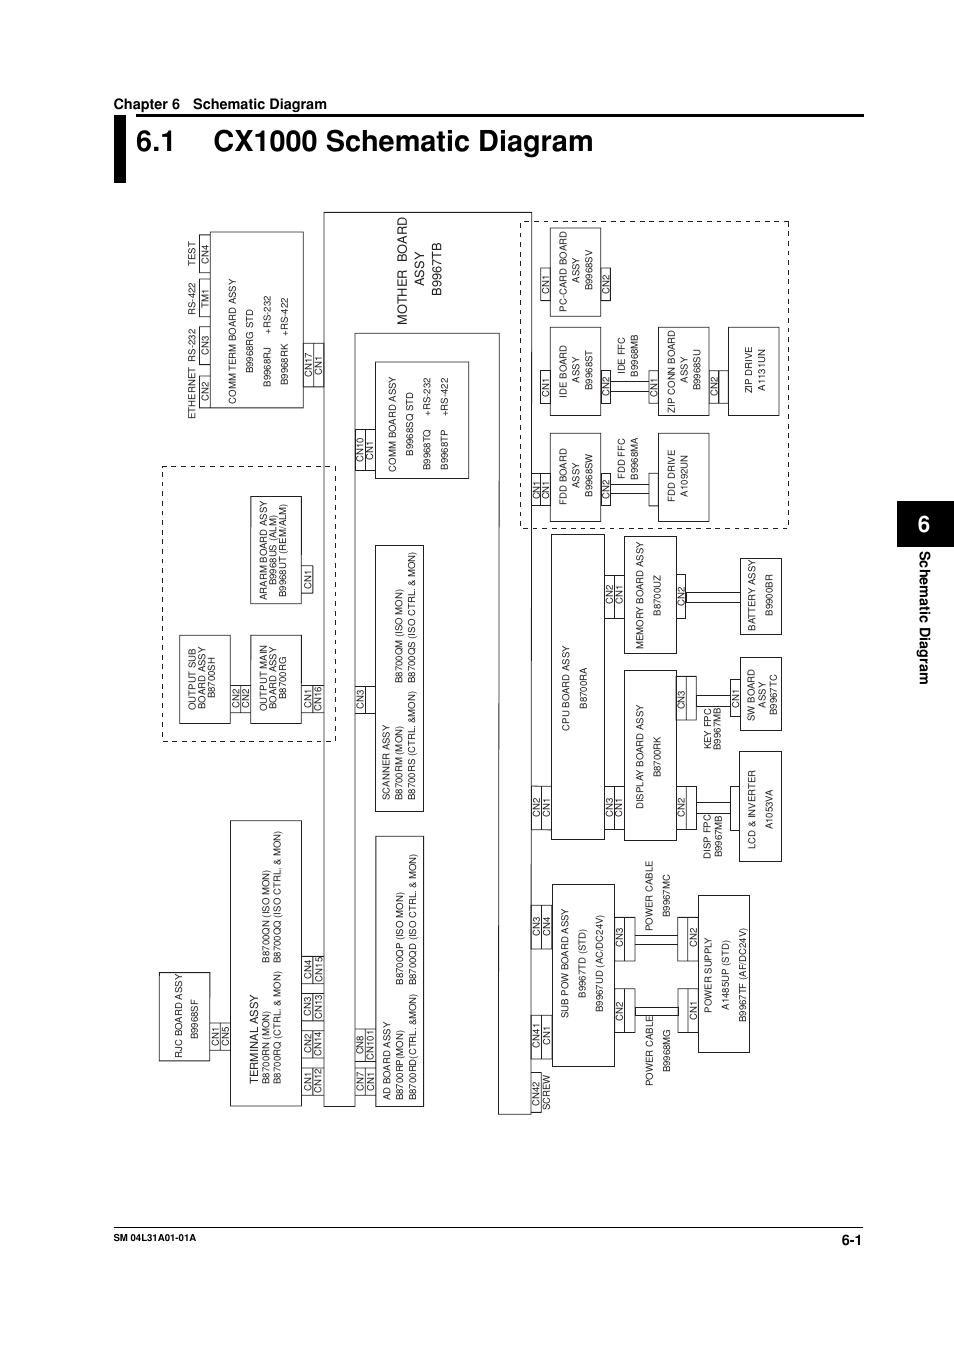 medium resolution of chapter 6 schematic diagram 1 cx1000 schematic diagram cx1000 schematic diagram 1 yokogawa data acquisition with pid control cx2000 user manual page